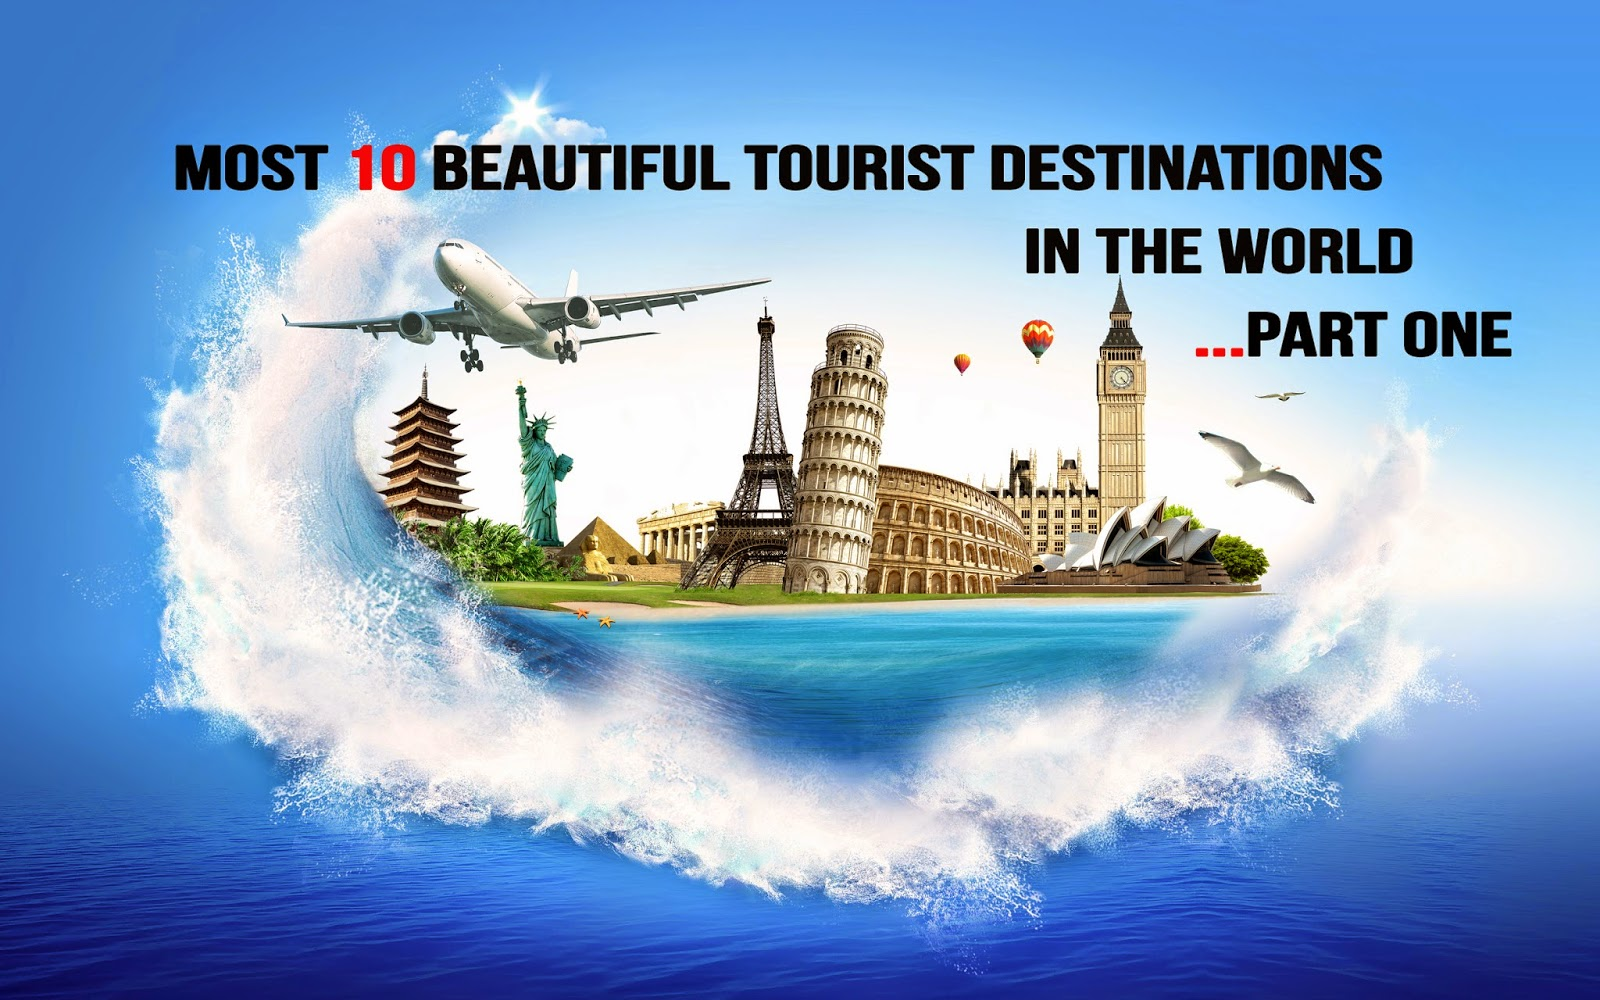 Most 10 beautiful tourist destinations in the world ...